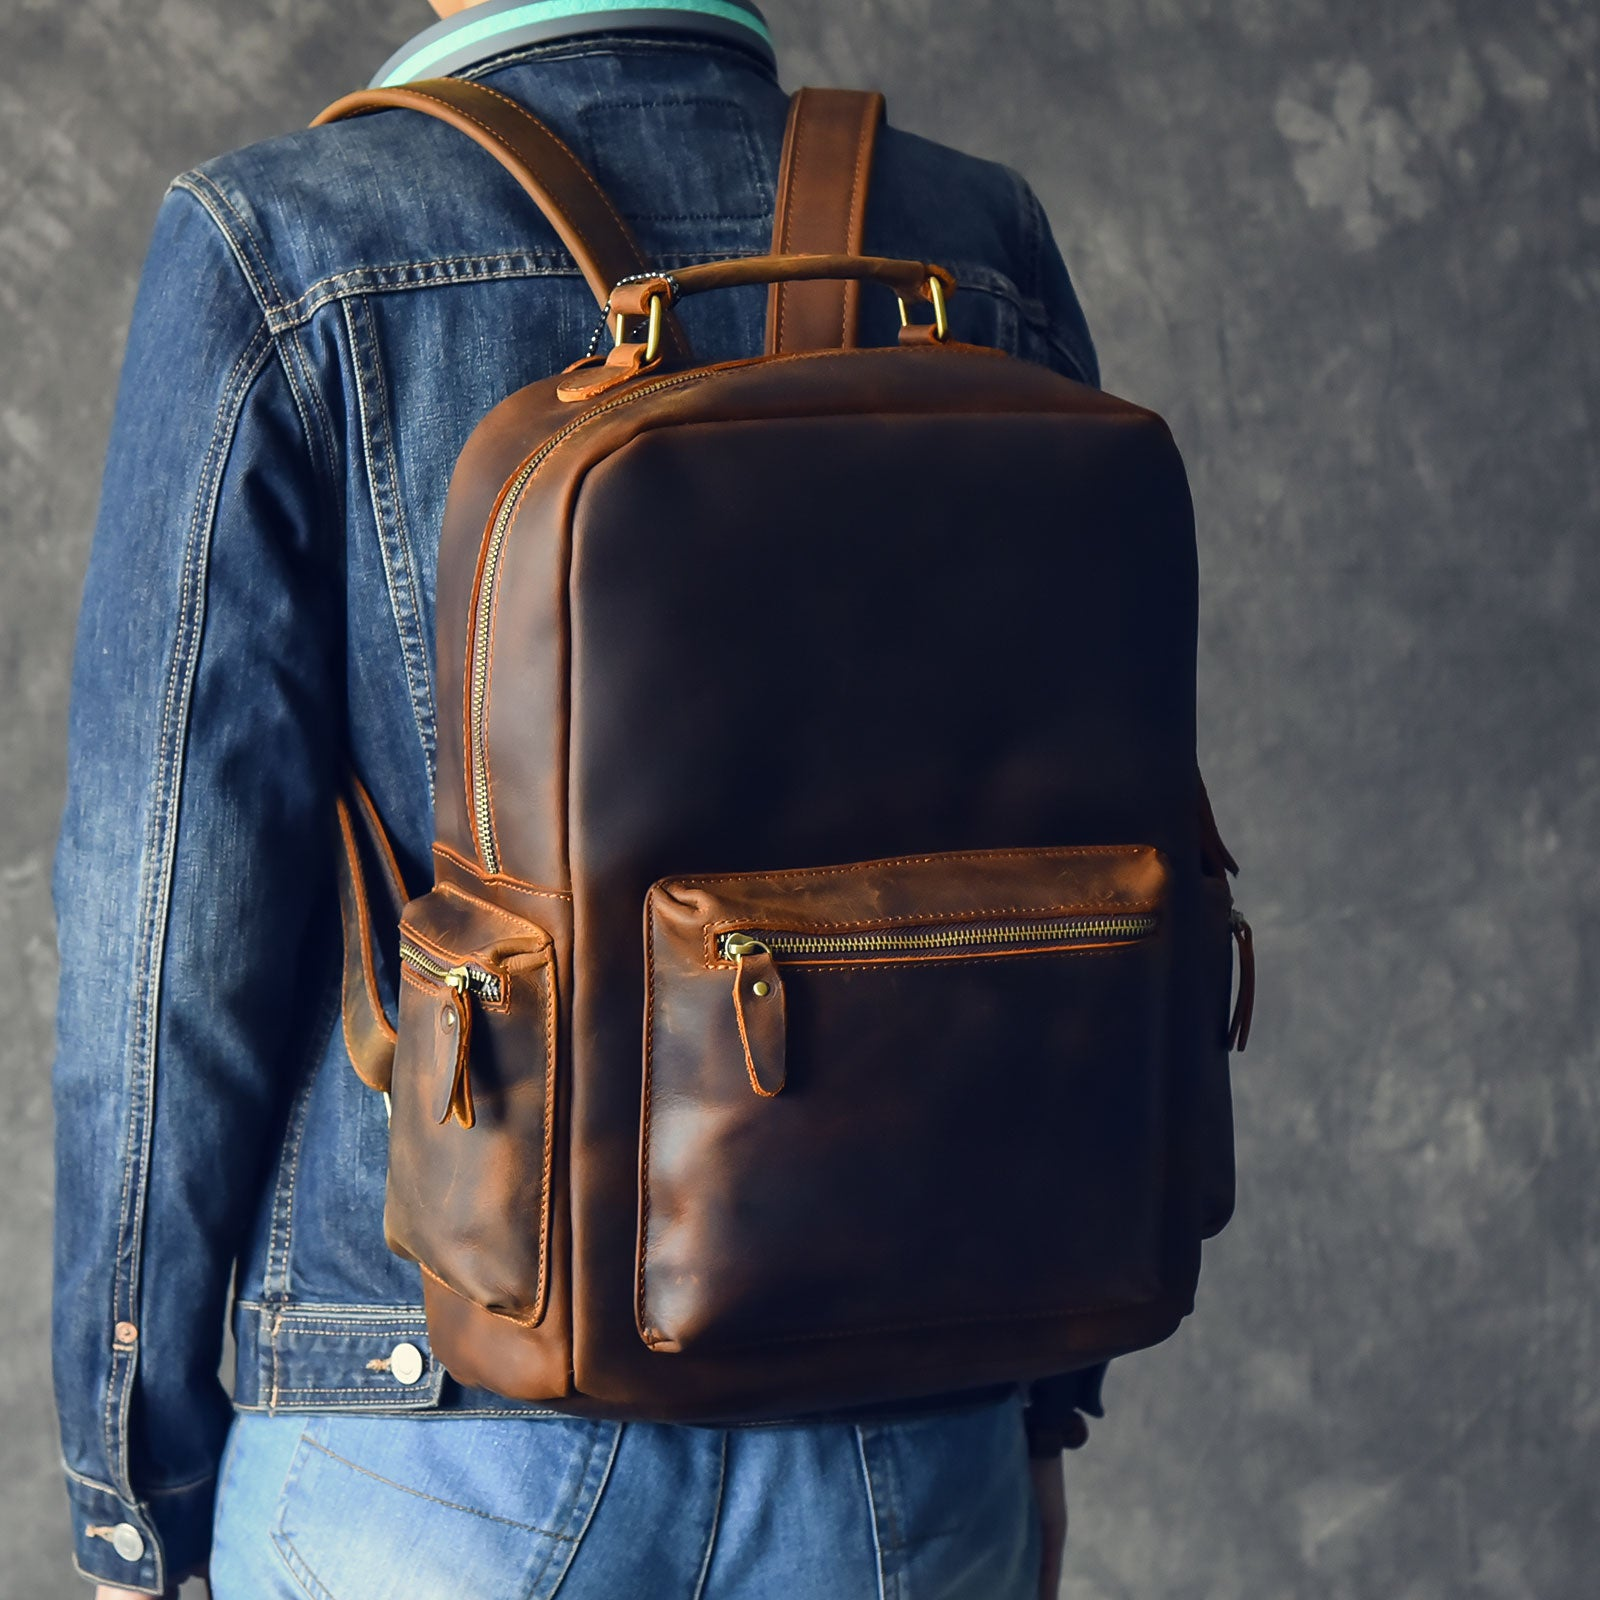 "Vintage Brown Leather Mens 15"" Laptop Backpack Hiking Backpack Travel Backpack College School Bag for Men"